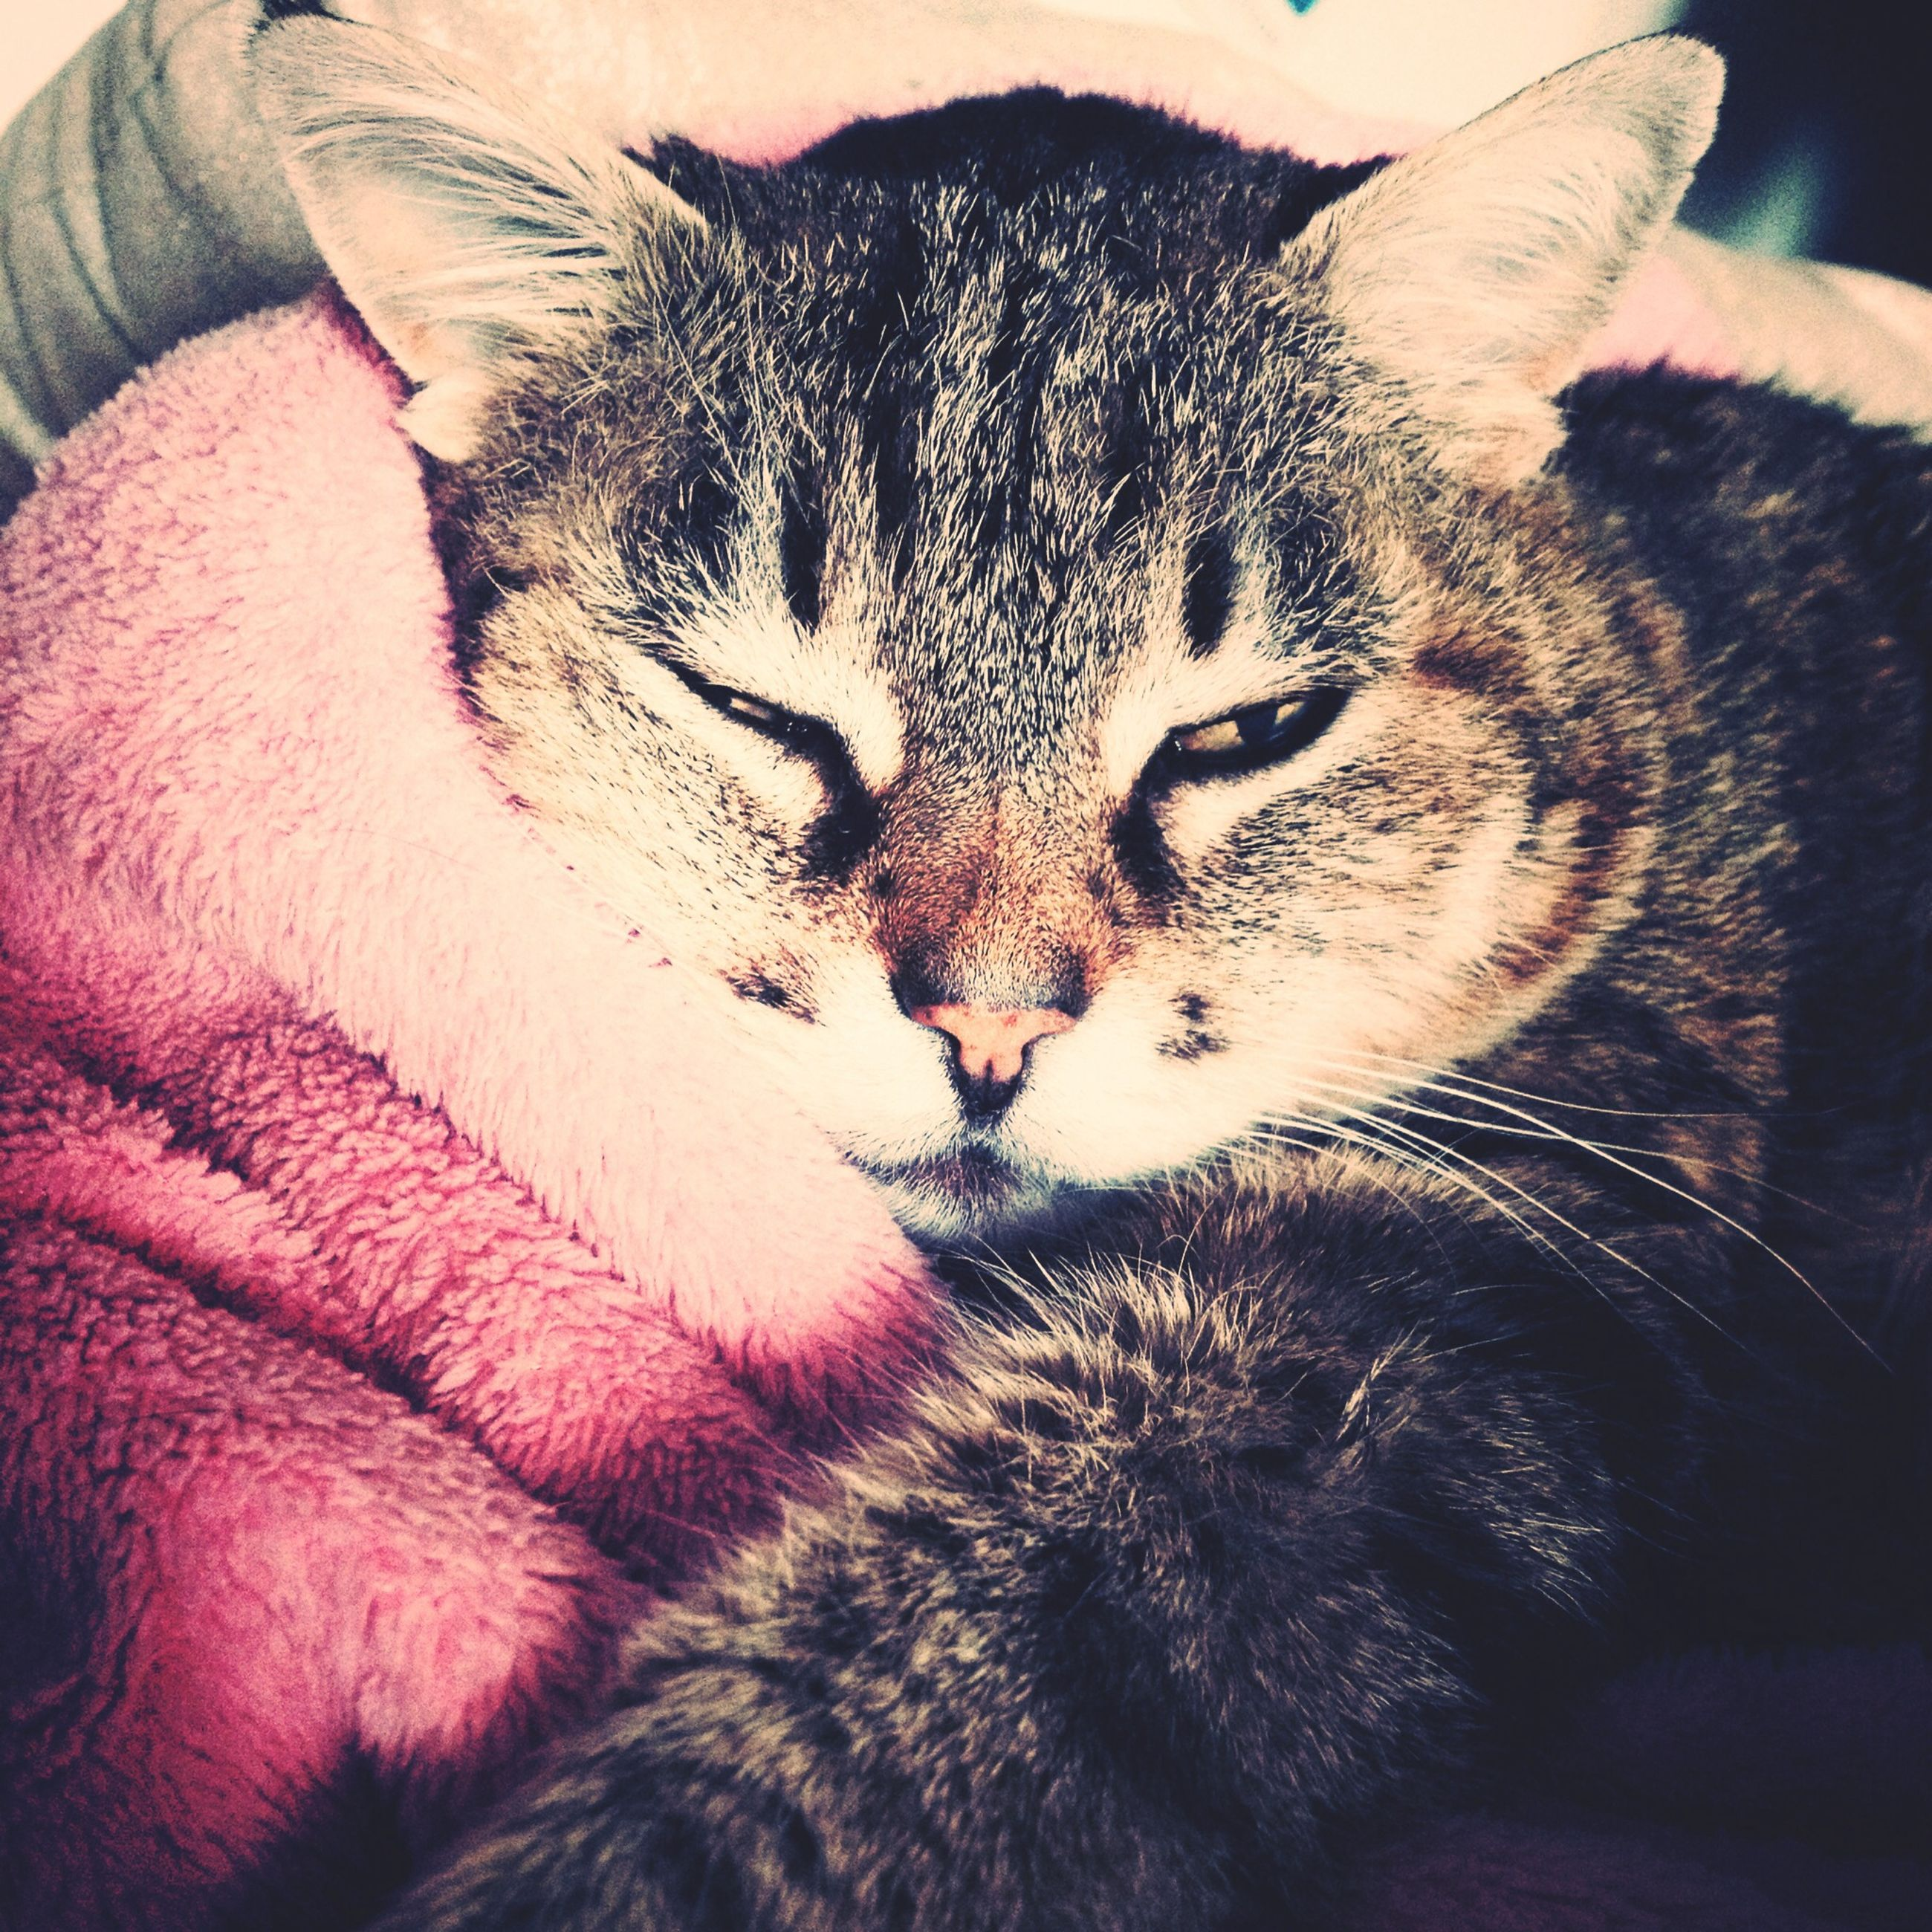 domestic animals, animal themes, mammal, pets, indoors, domestic cat, one animal, cat, feline, relaxation, sleeping, resting, lying down, close-up, whisker, eyes closed, bed, animal head, animal body part, home interior